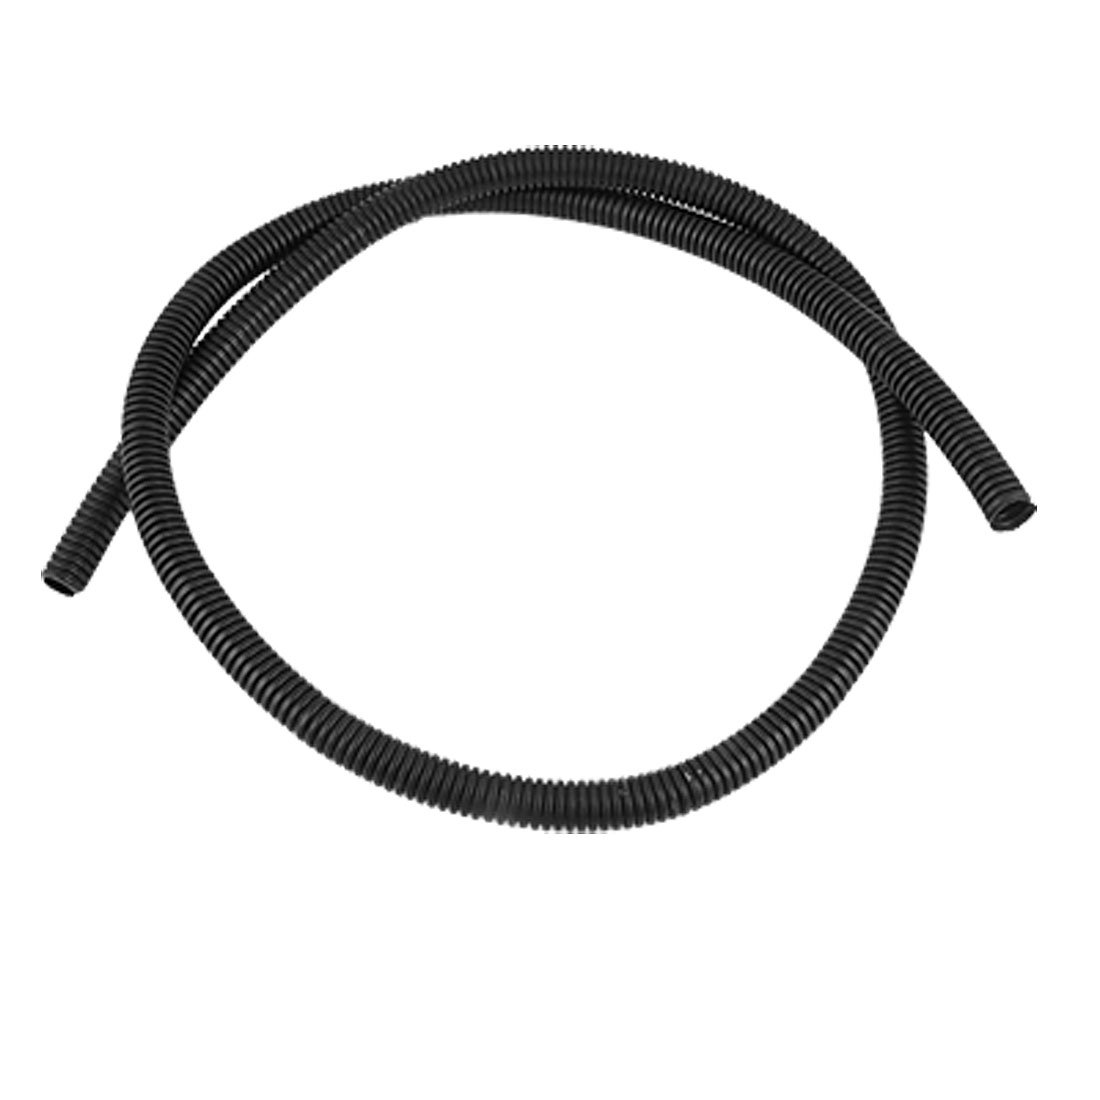 1m Black 13mm Diameter Flexible Corrugated Tube Electric Wire China Pvc Electrical Pipe For Conduit Wiring Photos Pictures Made Diy Tools